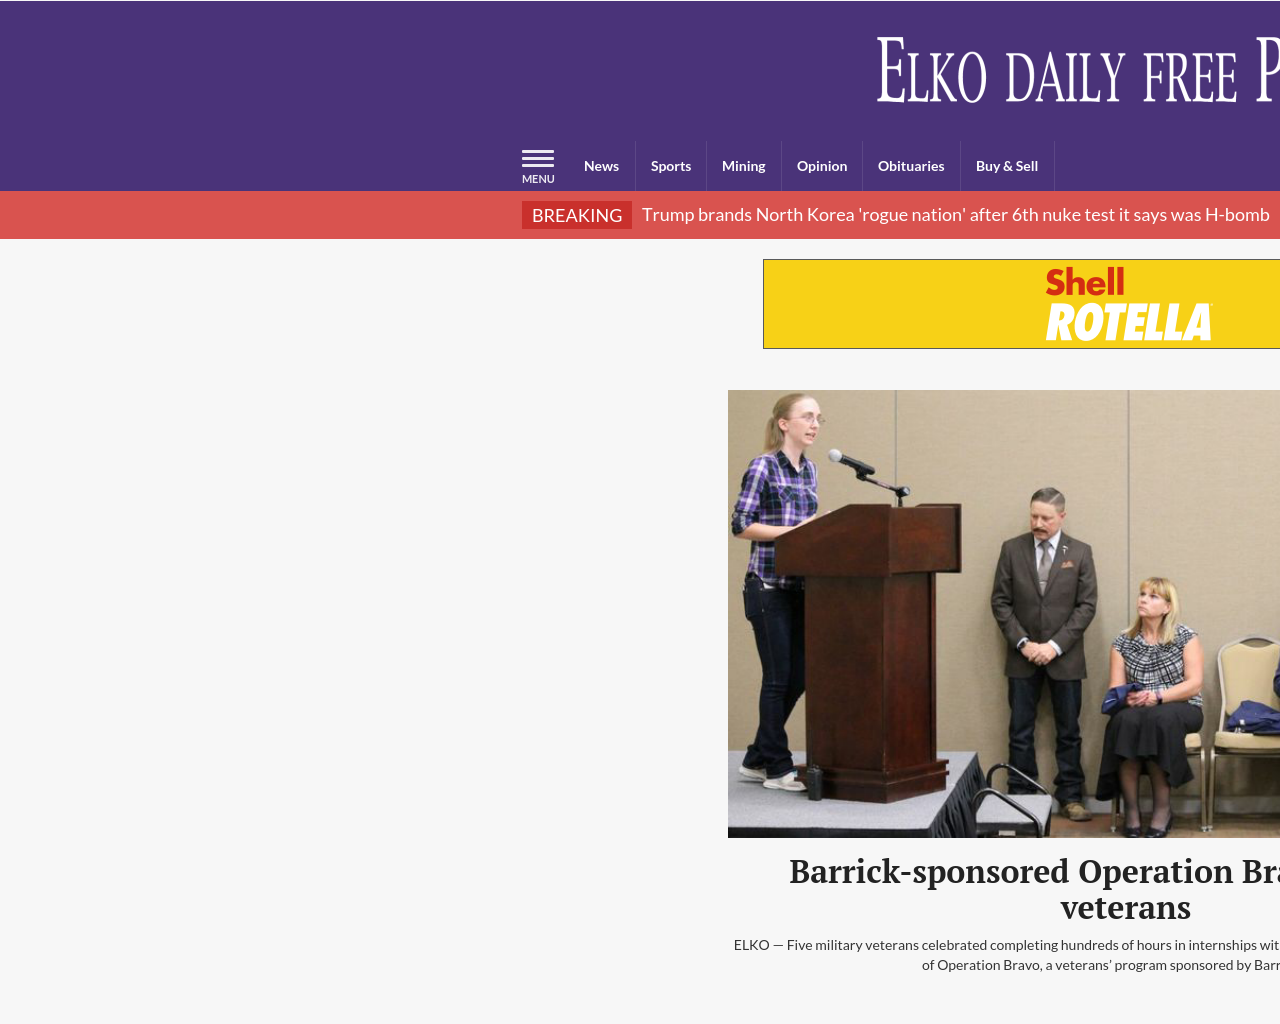 Elko-Daily-Advertising-Reviews-Pricing